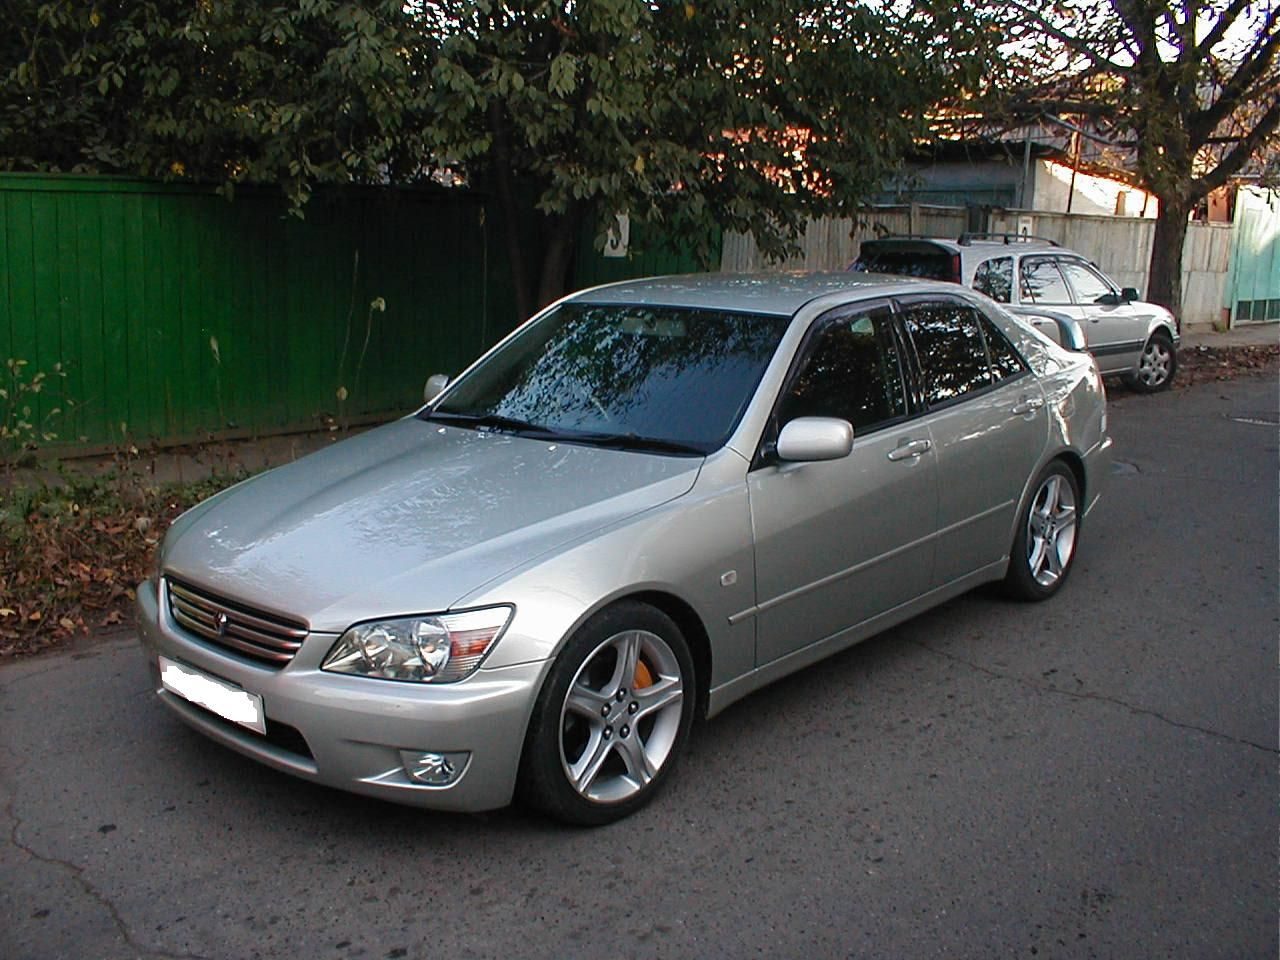 Gray Toyota Altezza Lexus Toyota Lexus Is300